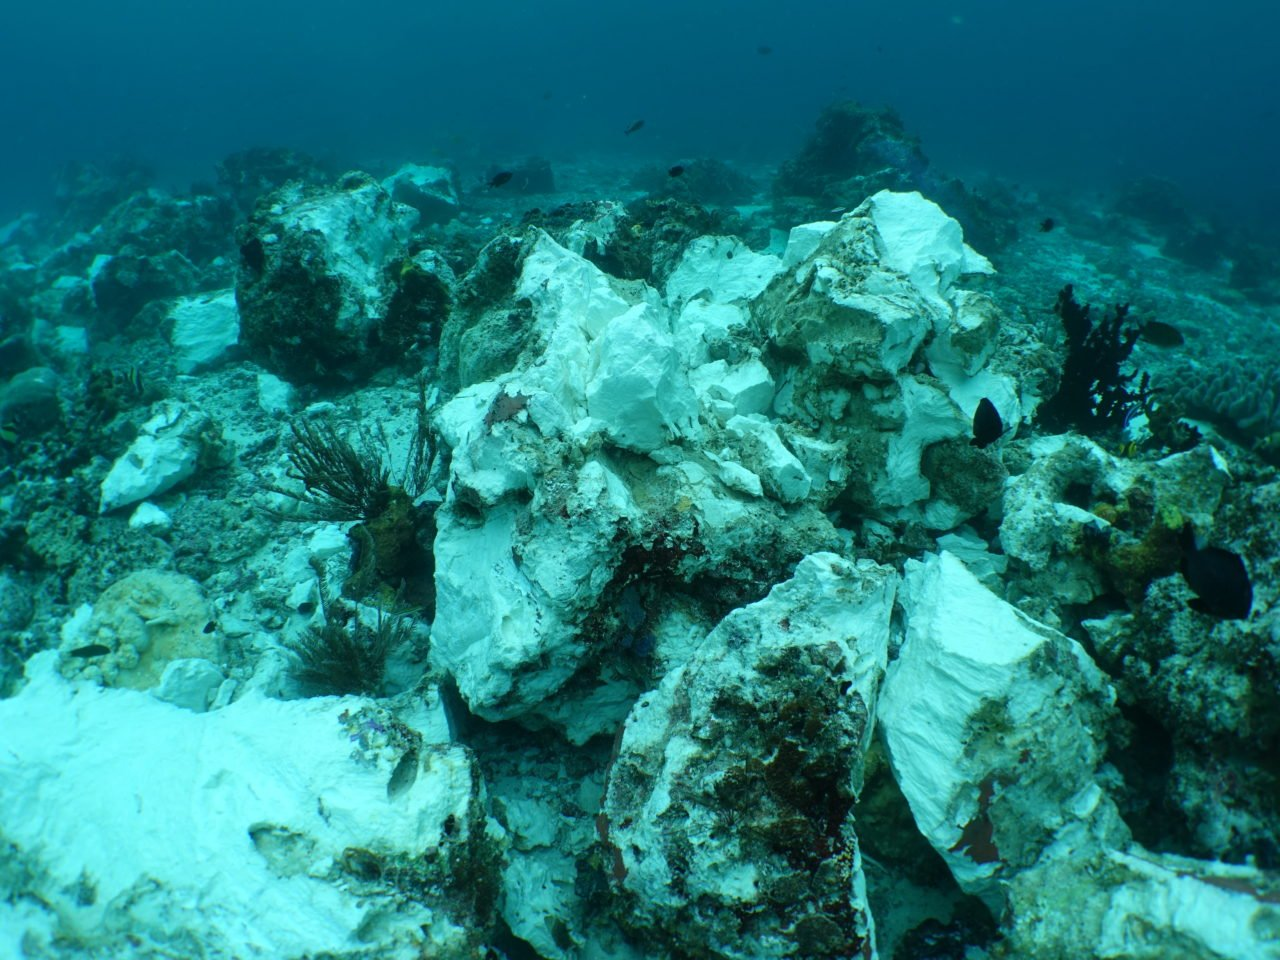 picture of reef top in Raja Ampat showing the harm done by British tourist ship Caledonian Sky